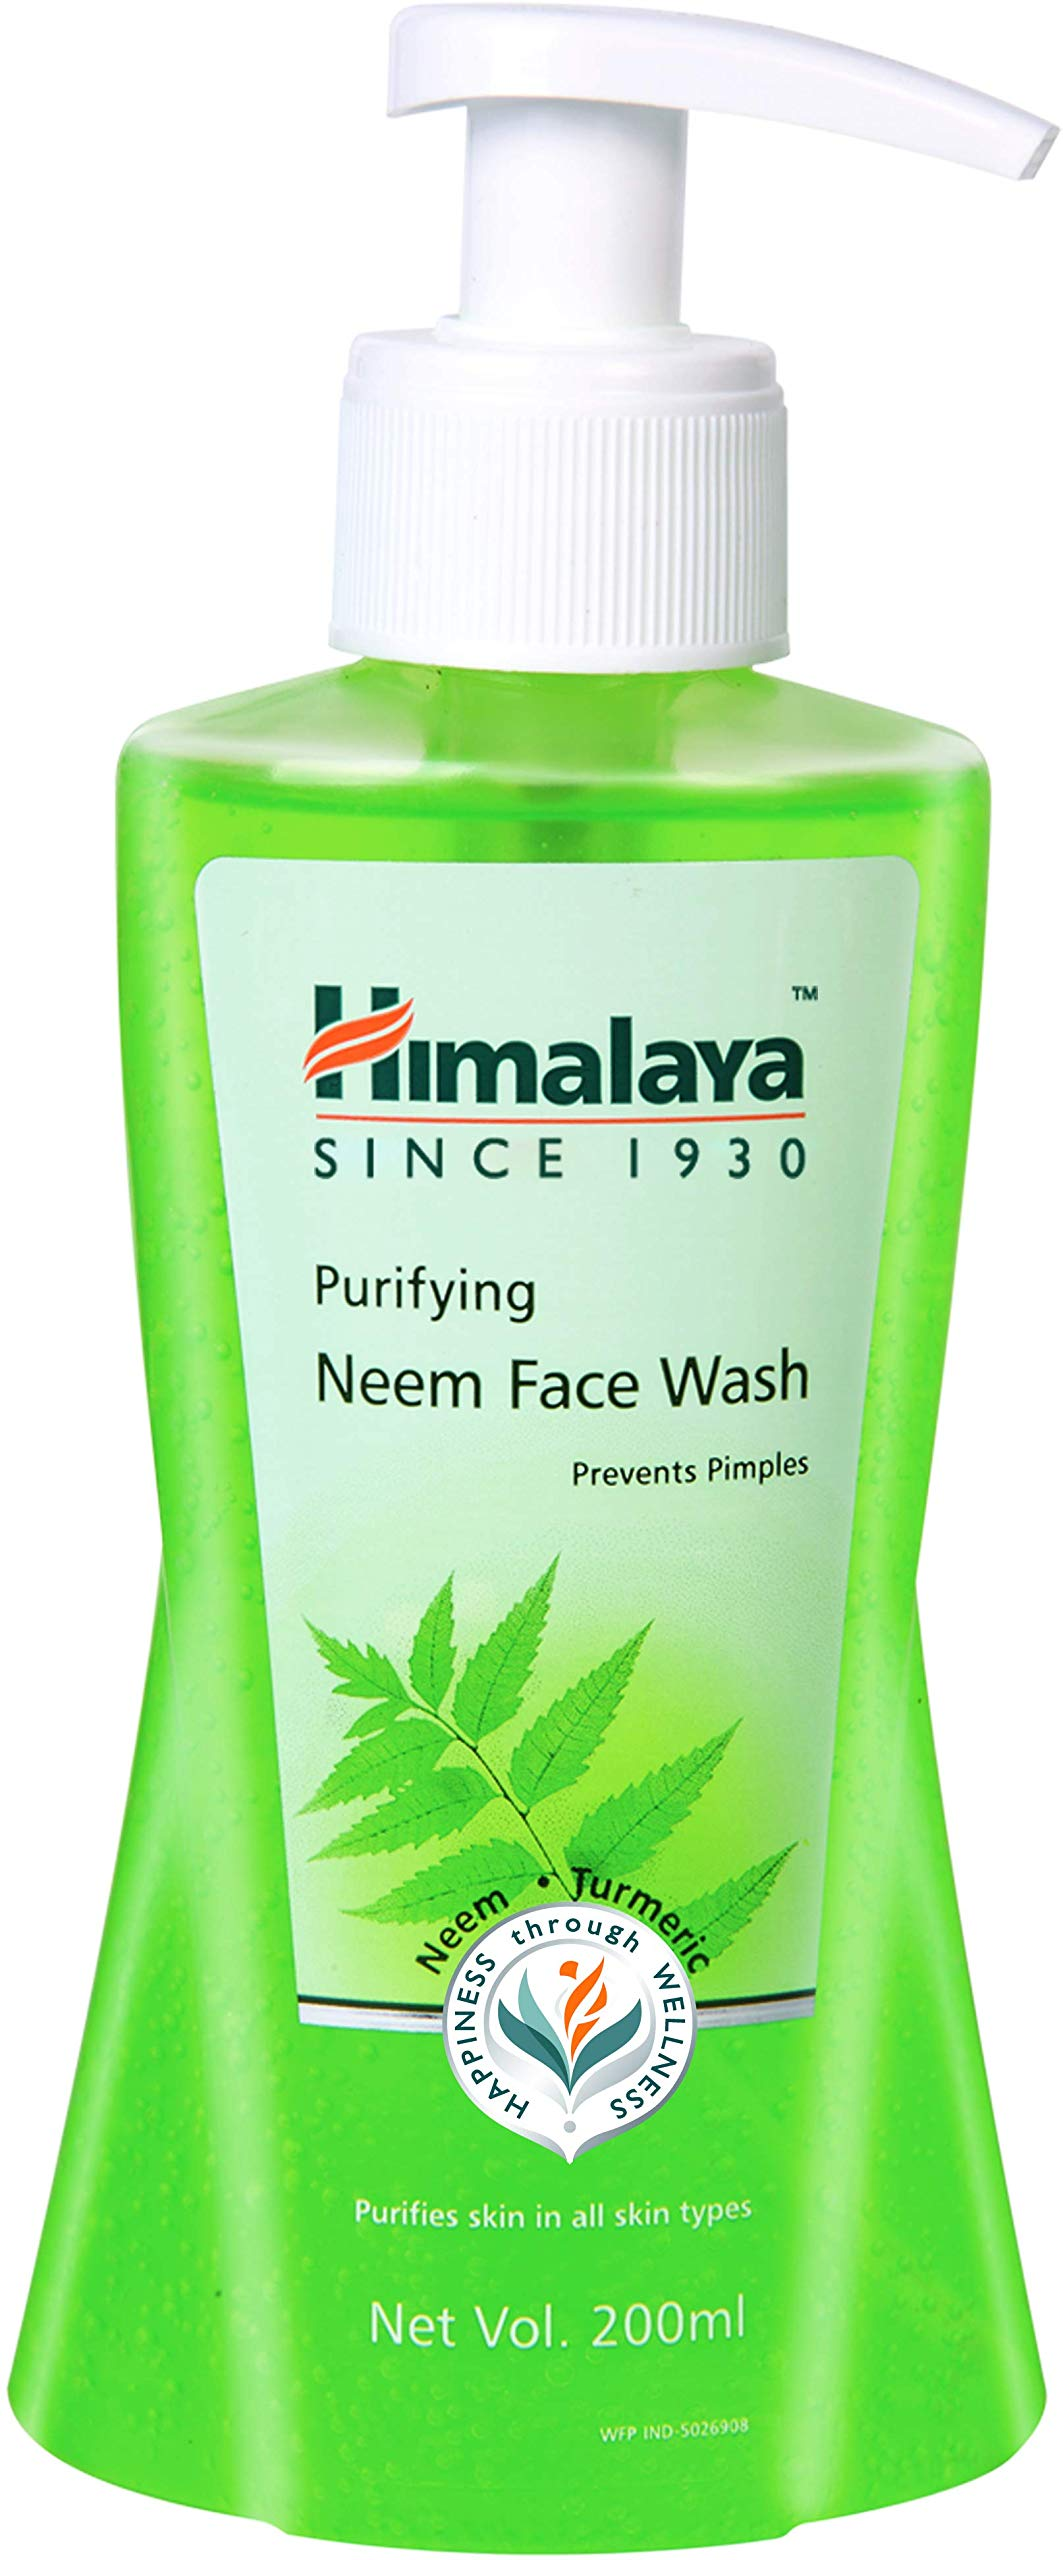 Himalaya Herbals Purifying Neem Face Wash, 200ml product image